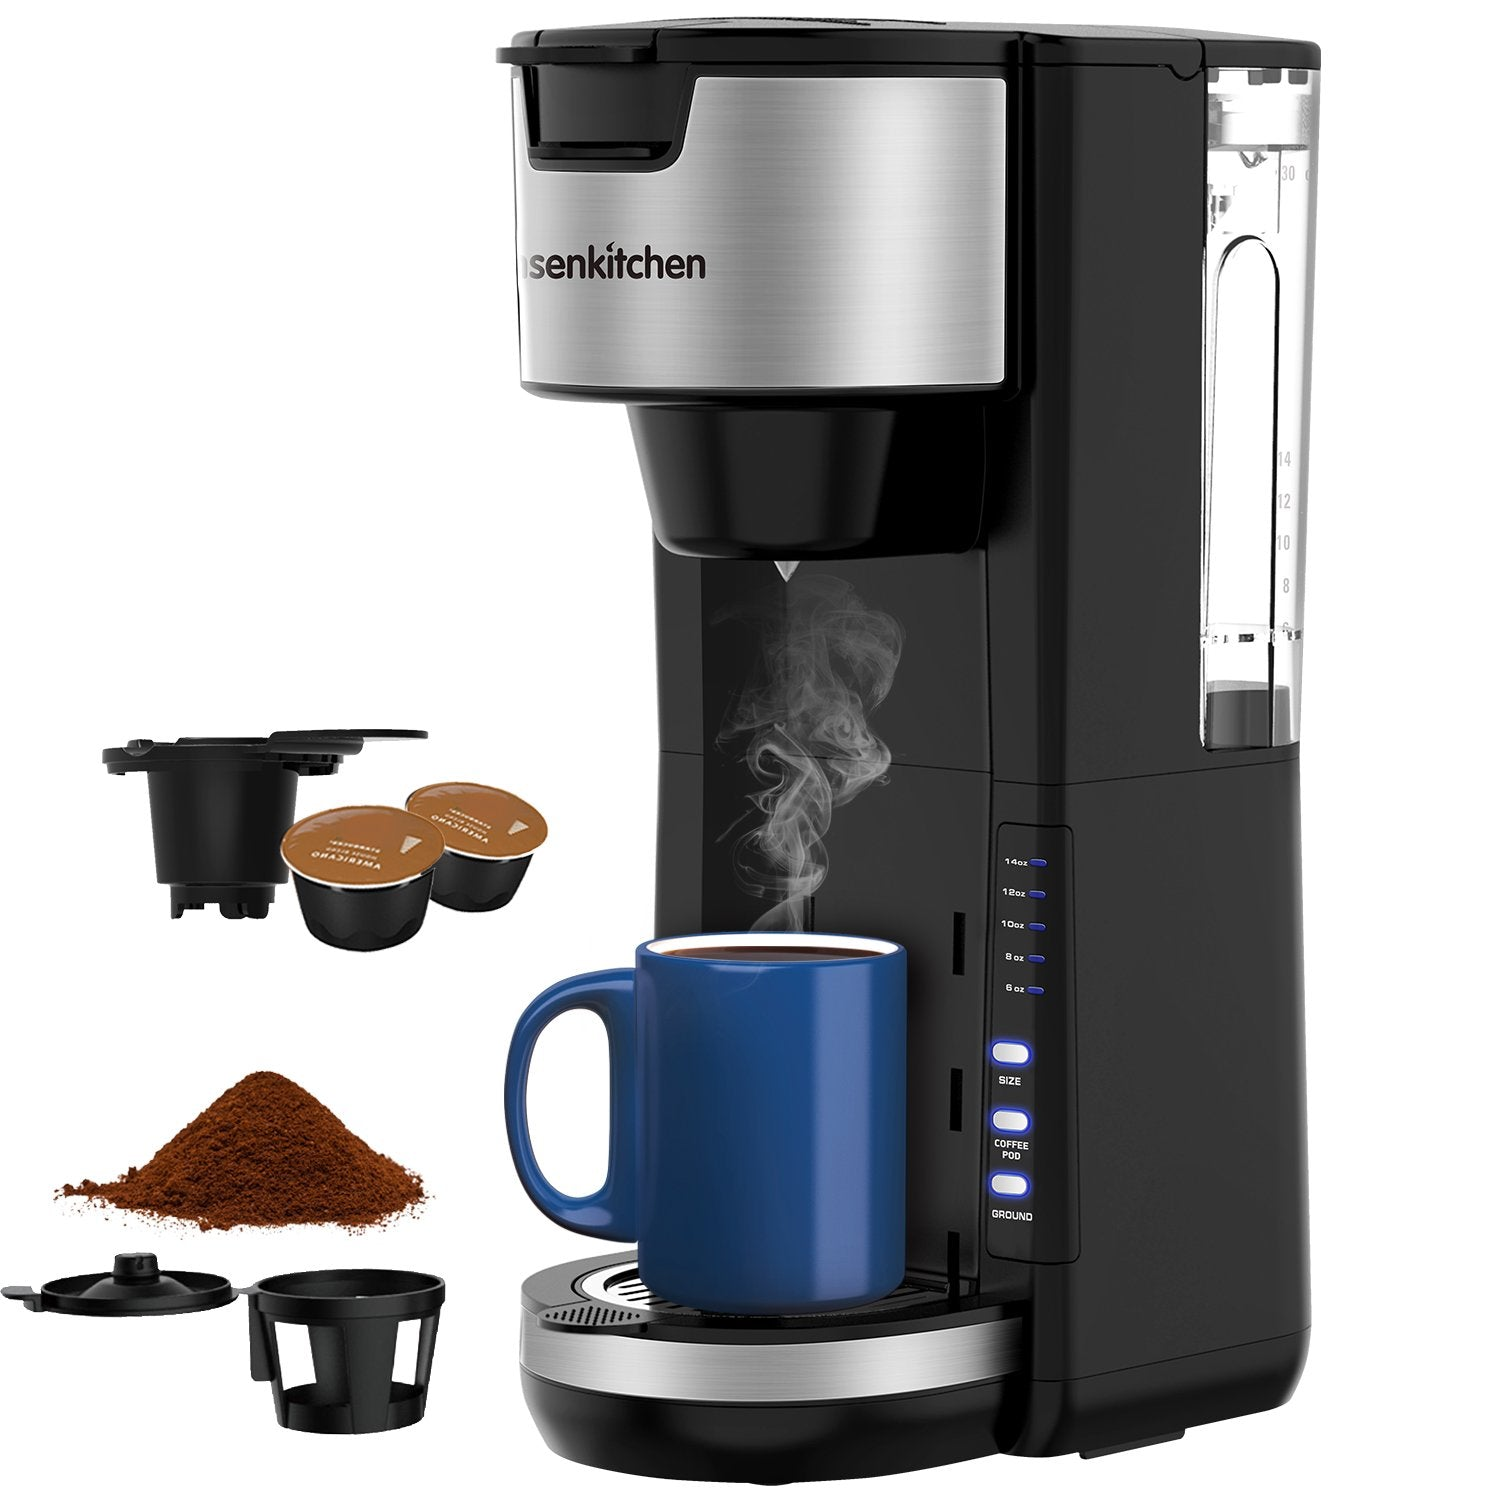 Bonsenkitchen CM8901 2 in 1 Compact and Durable K-Cup Coffee Maker